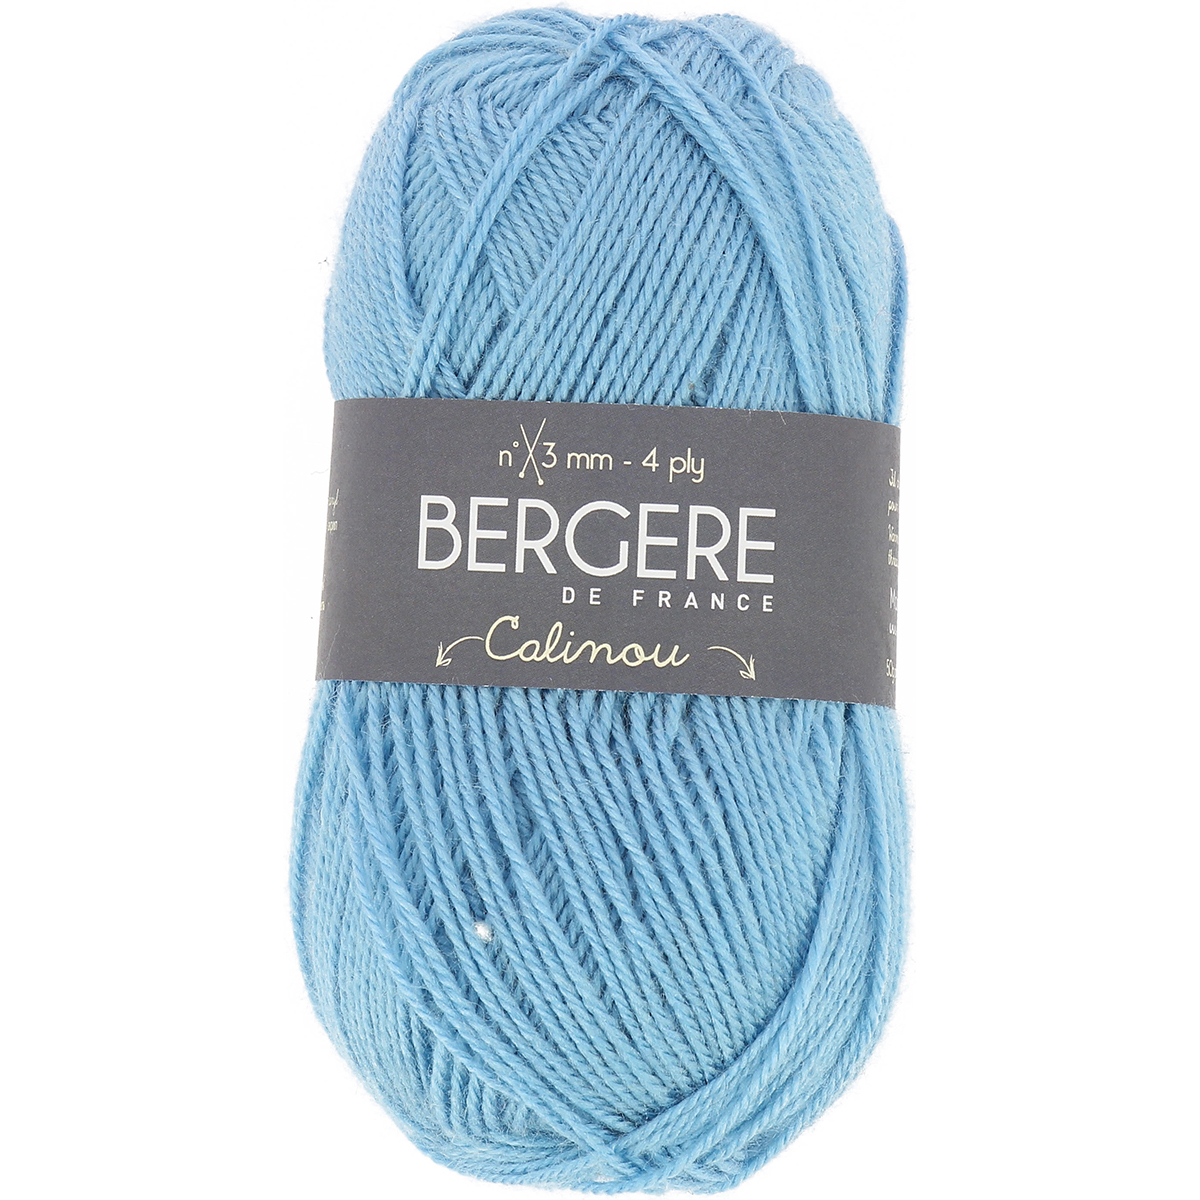 Bergere De France Calinou Yarn-Bleu Clair - image 1 de 1